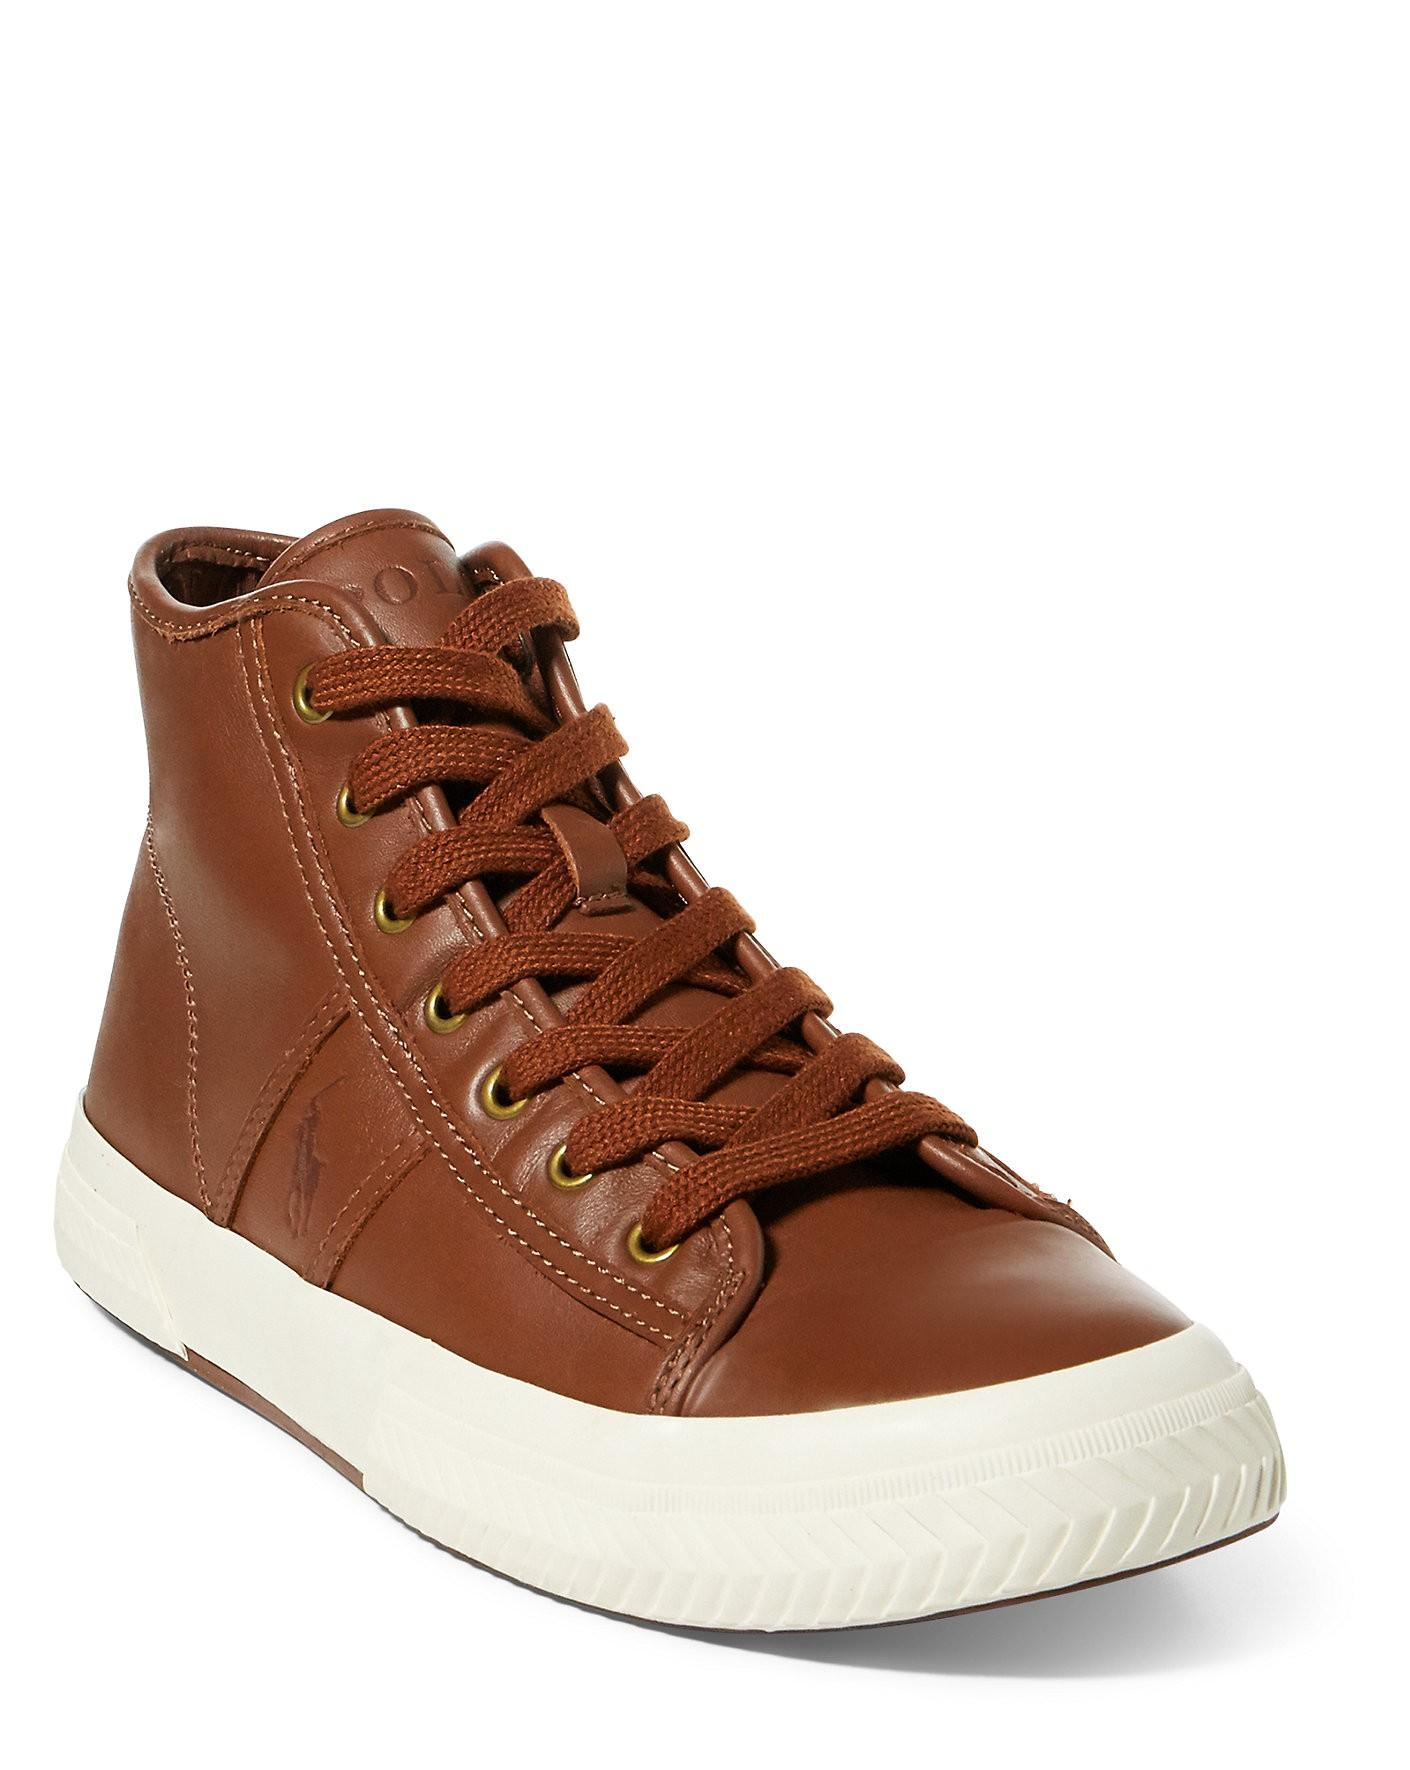 084c7e0c35 Tremayne Nappa Leather Sneaker in Deep Polo Tan